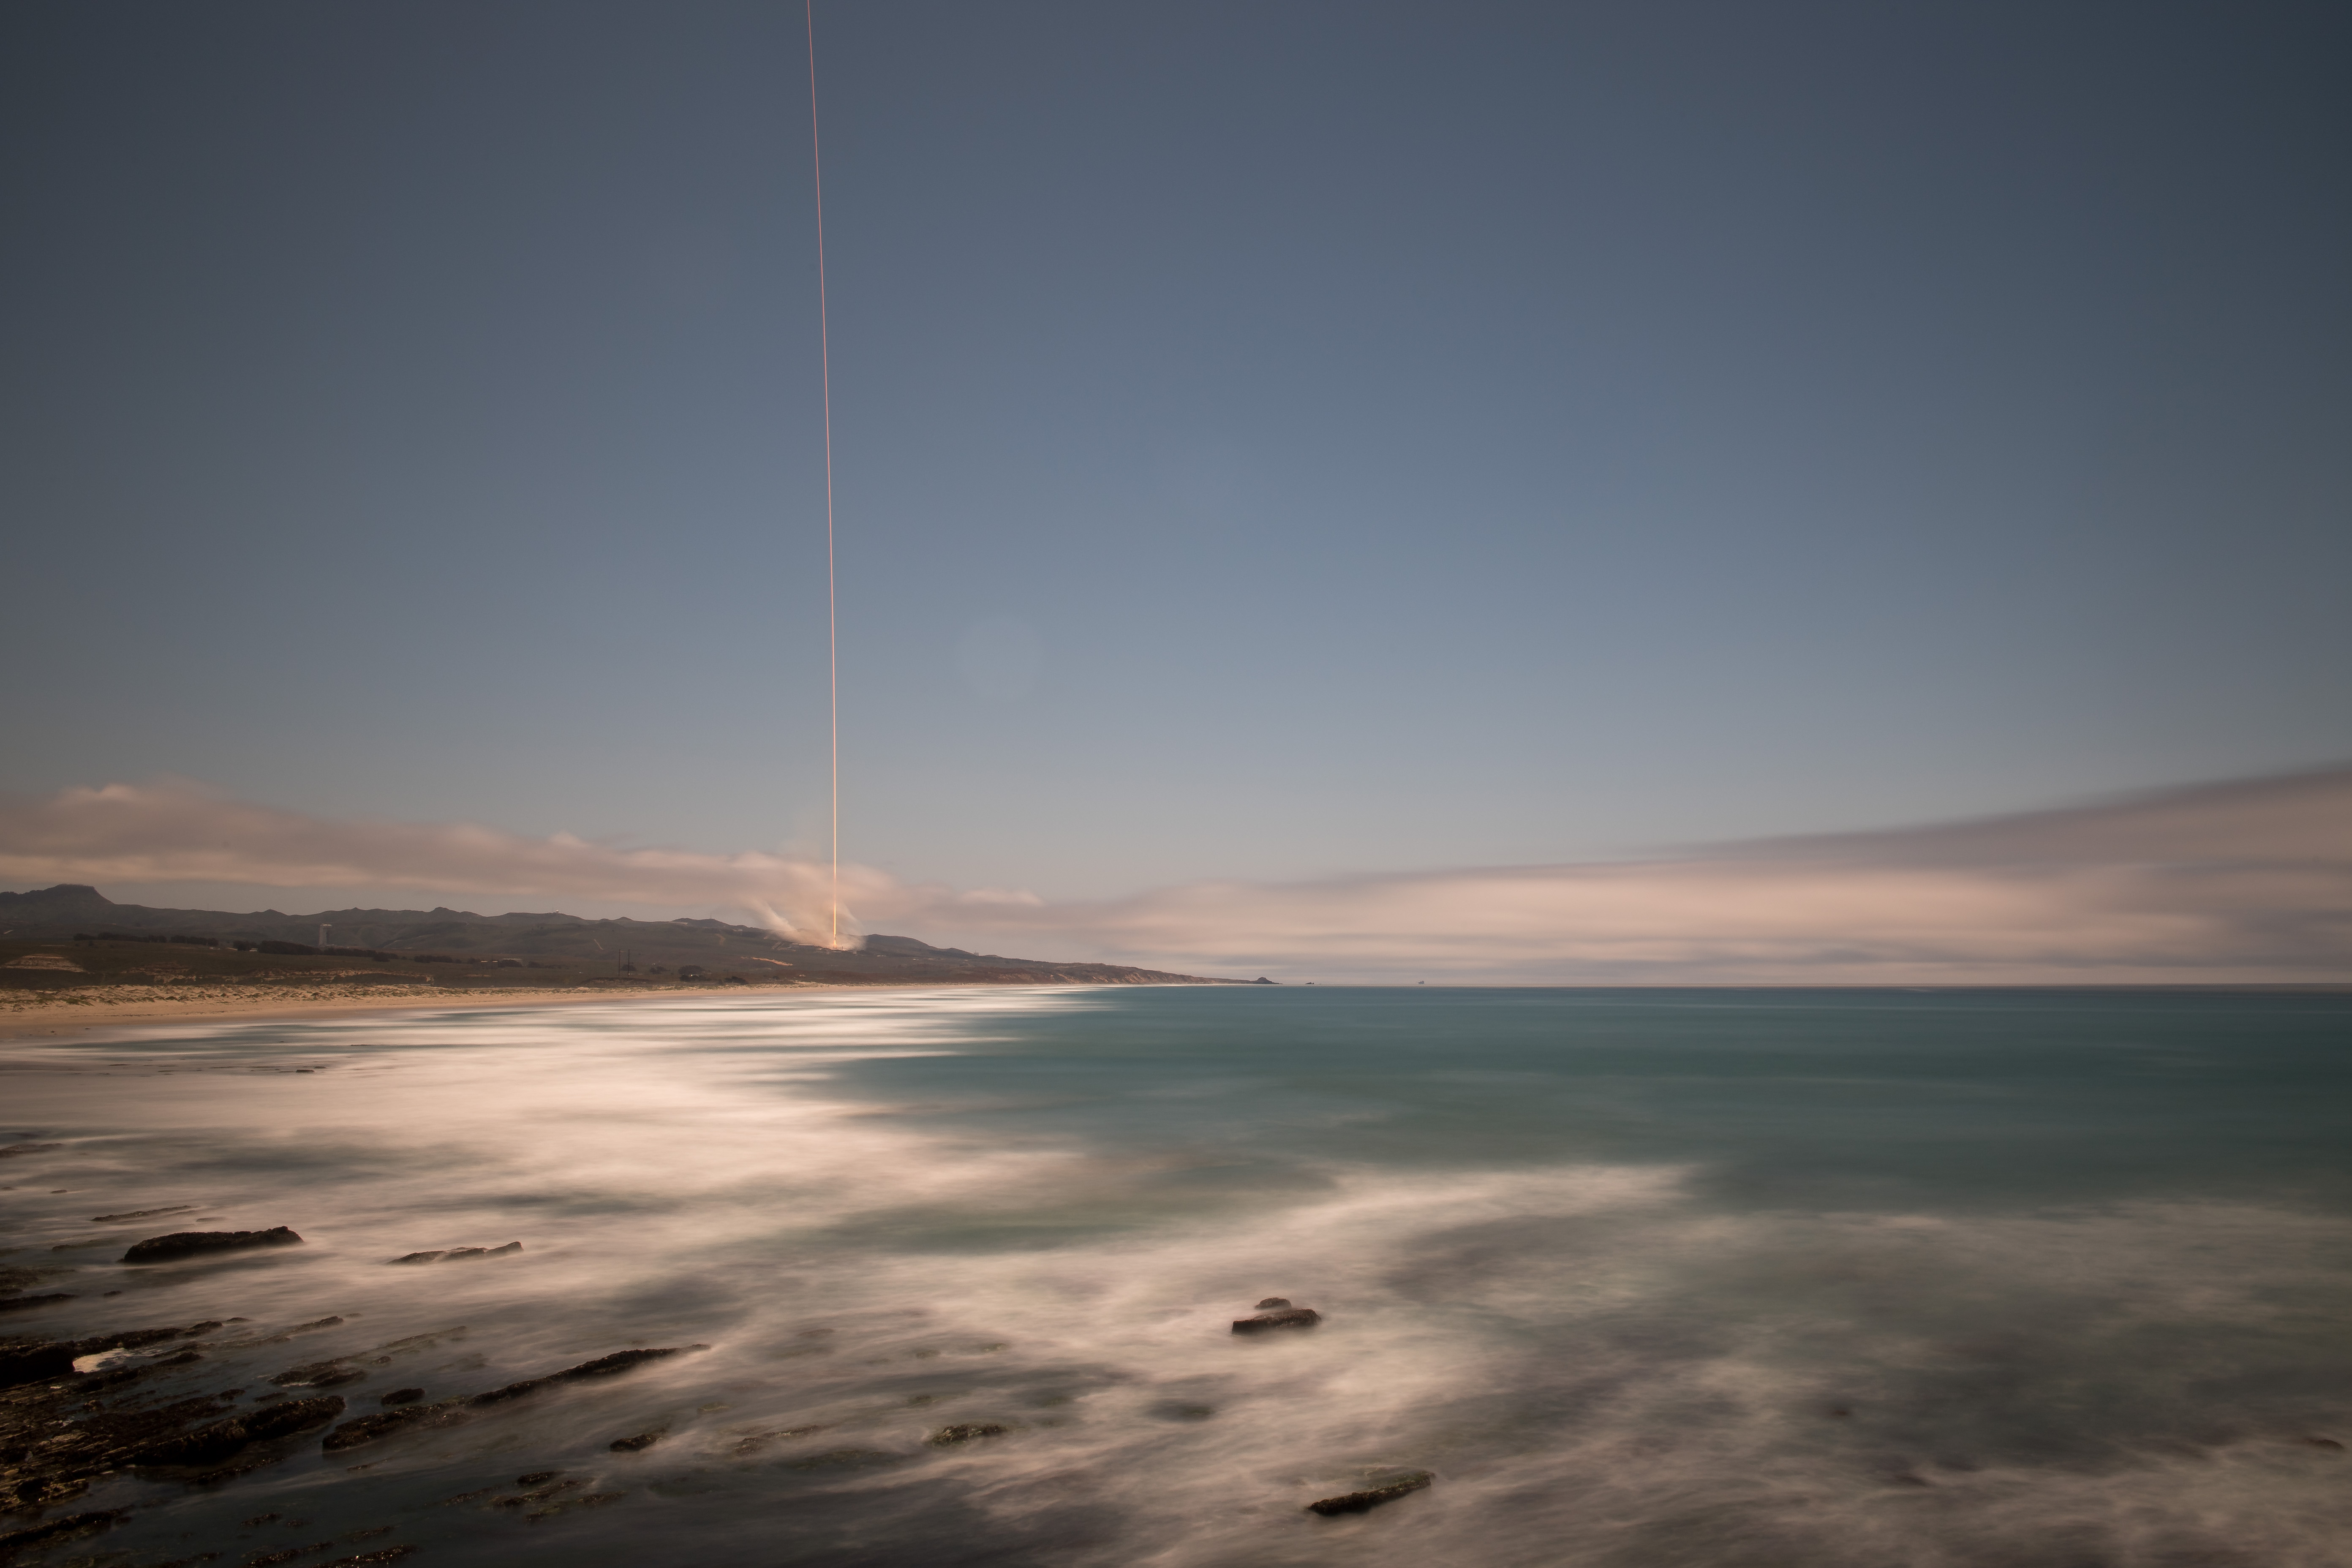 The rocket's blaze is seen across the sky in this long exposure view with the ocean in the foreground.